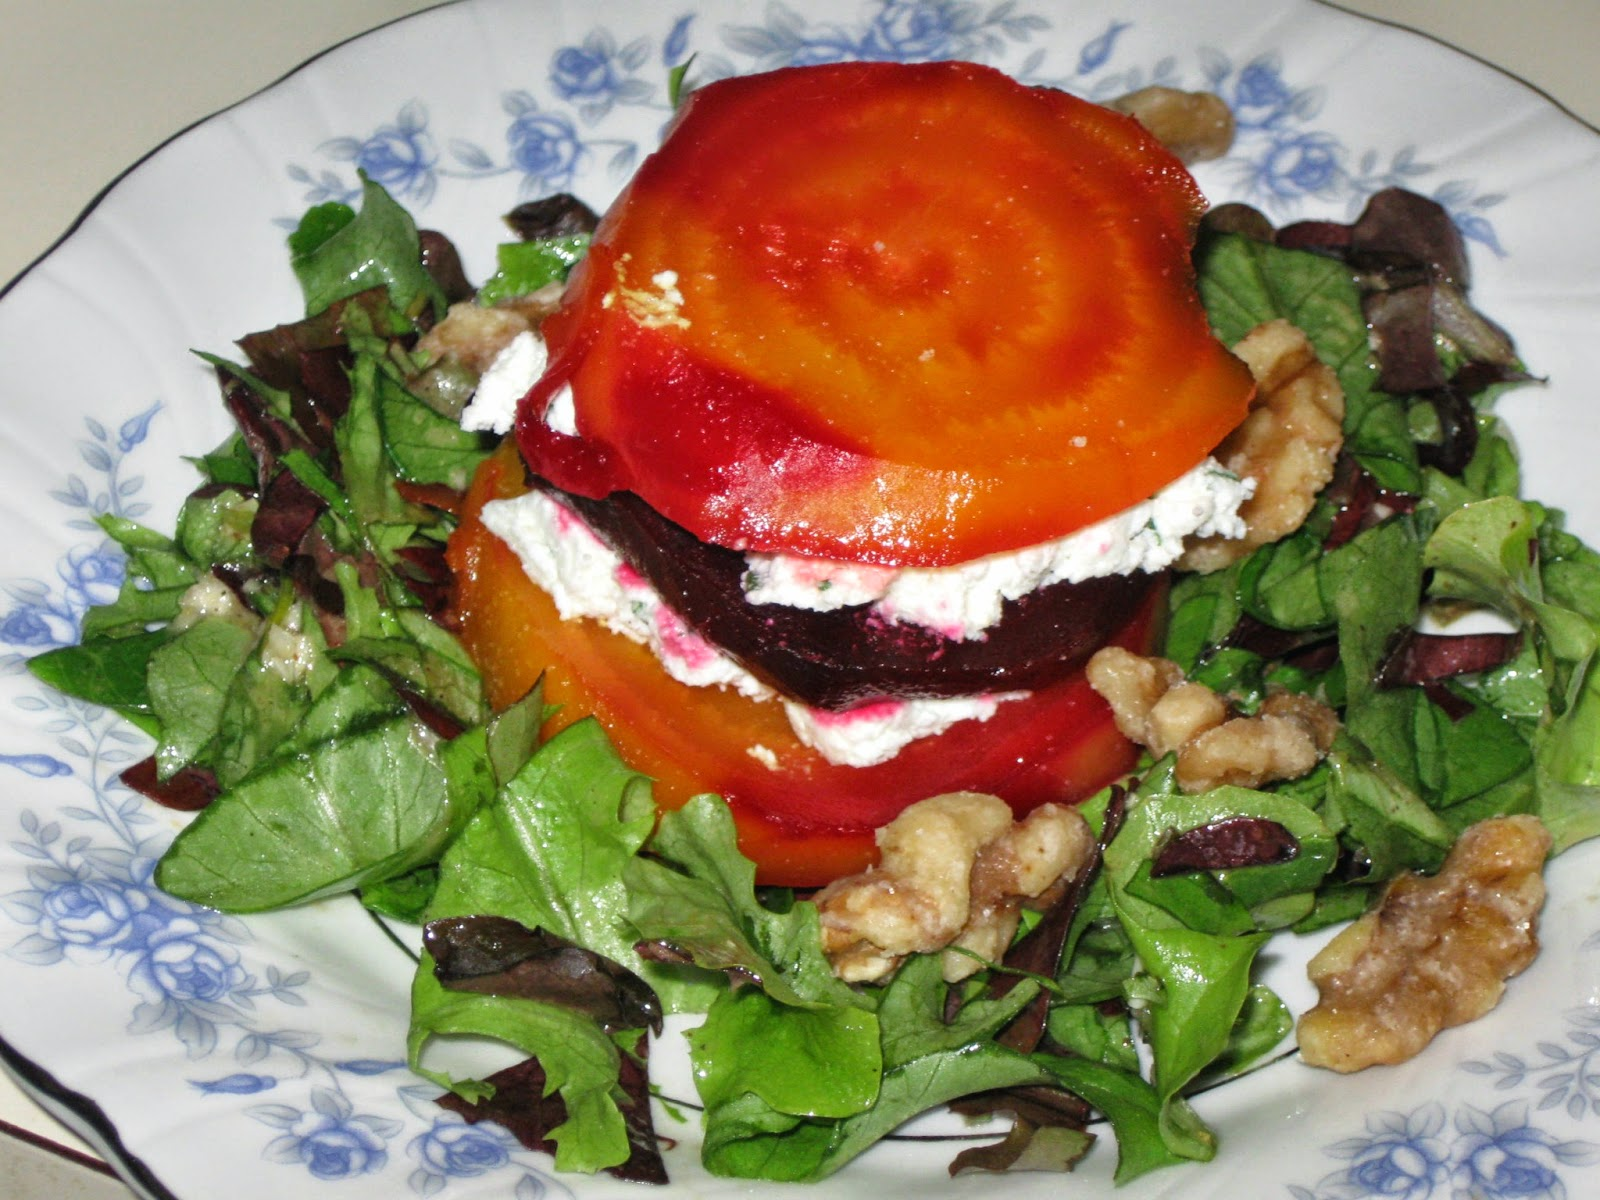 Roasted Beet Napoleon